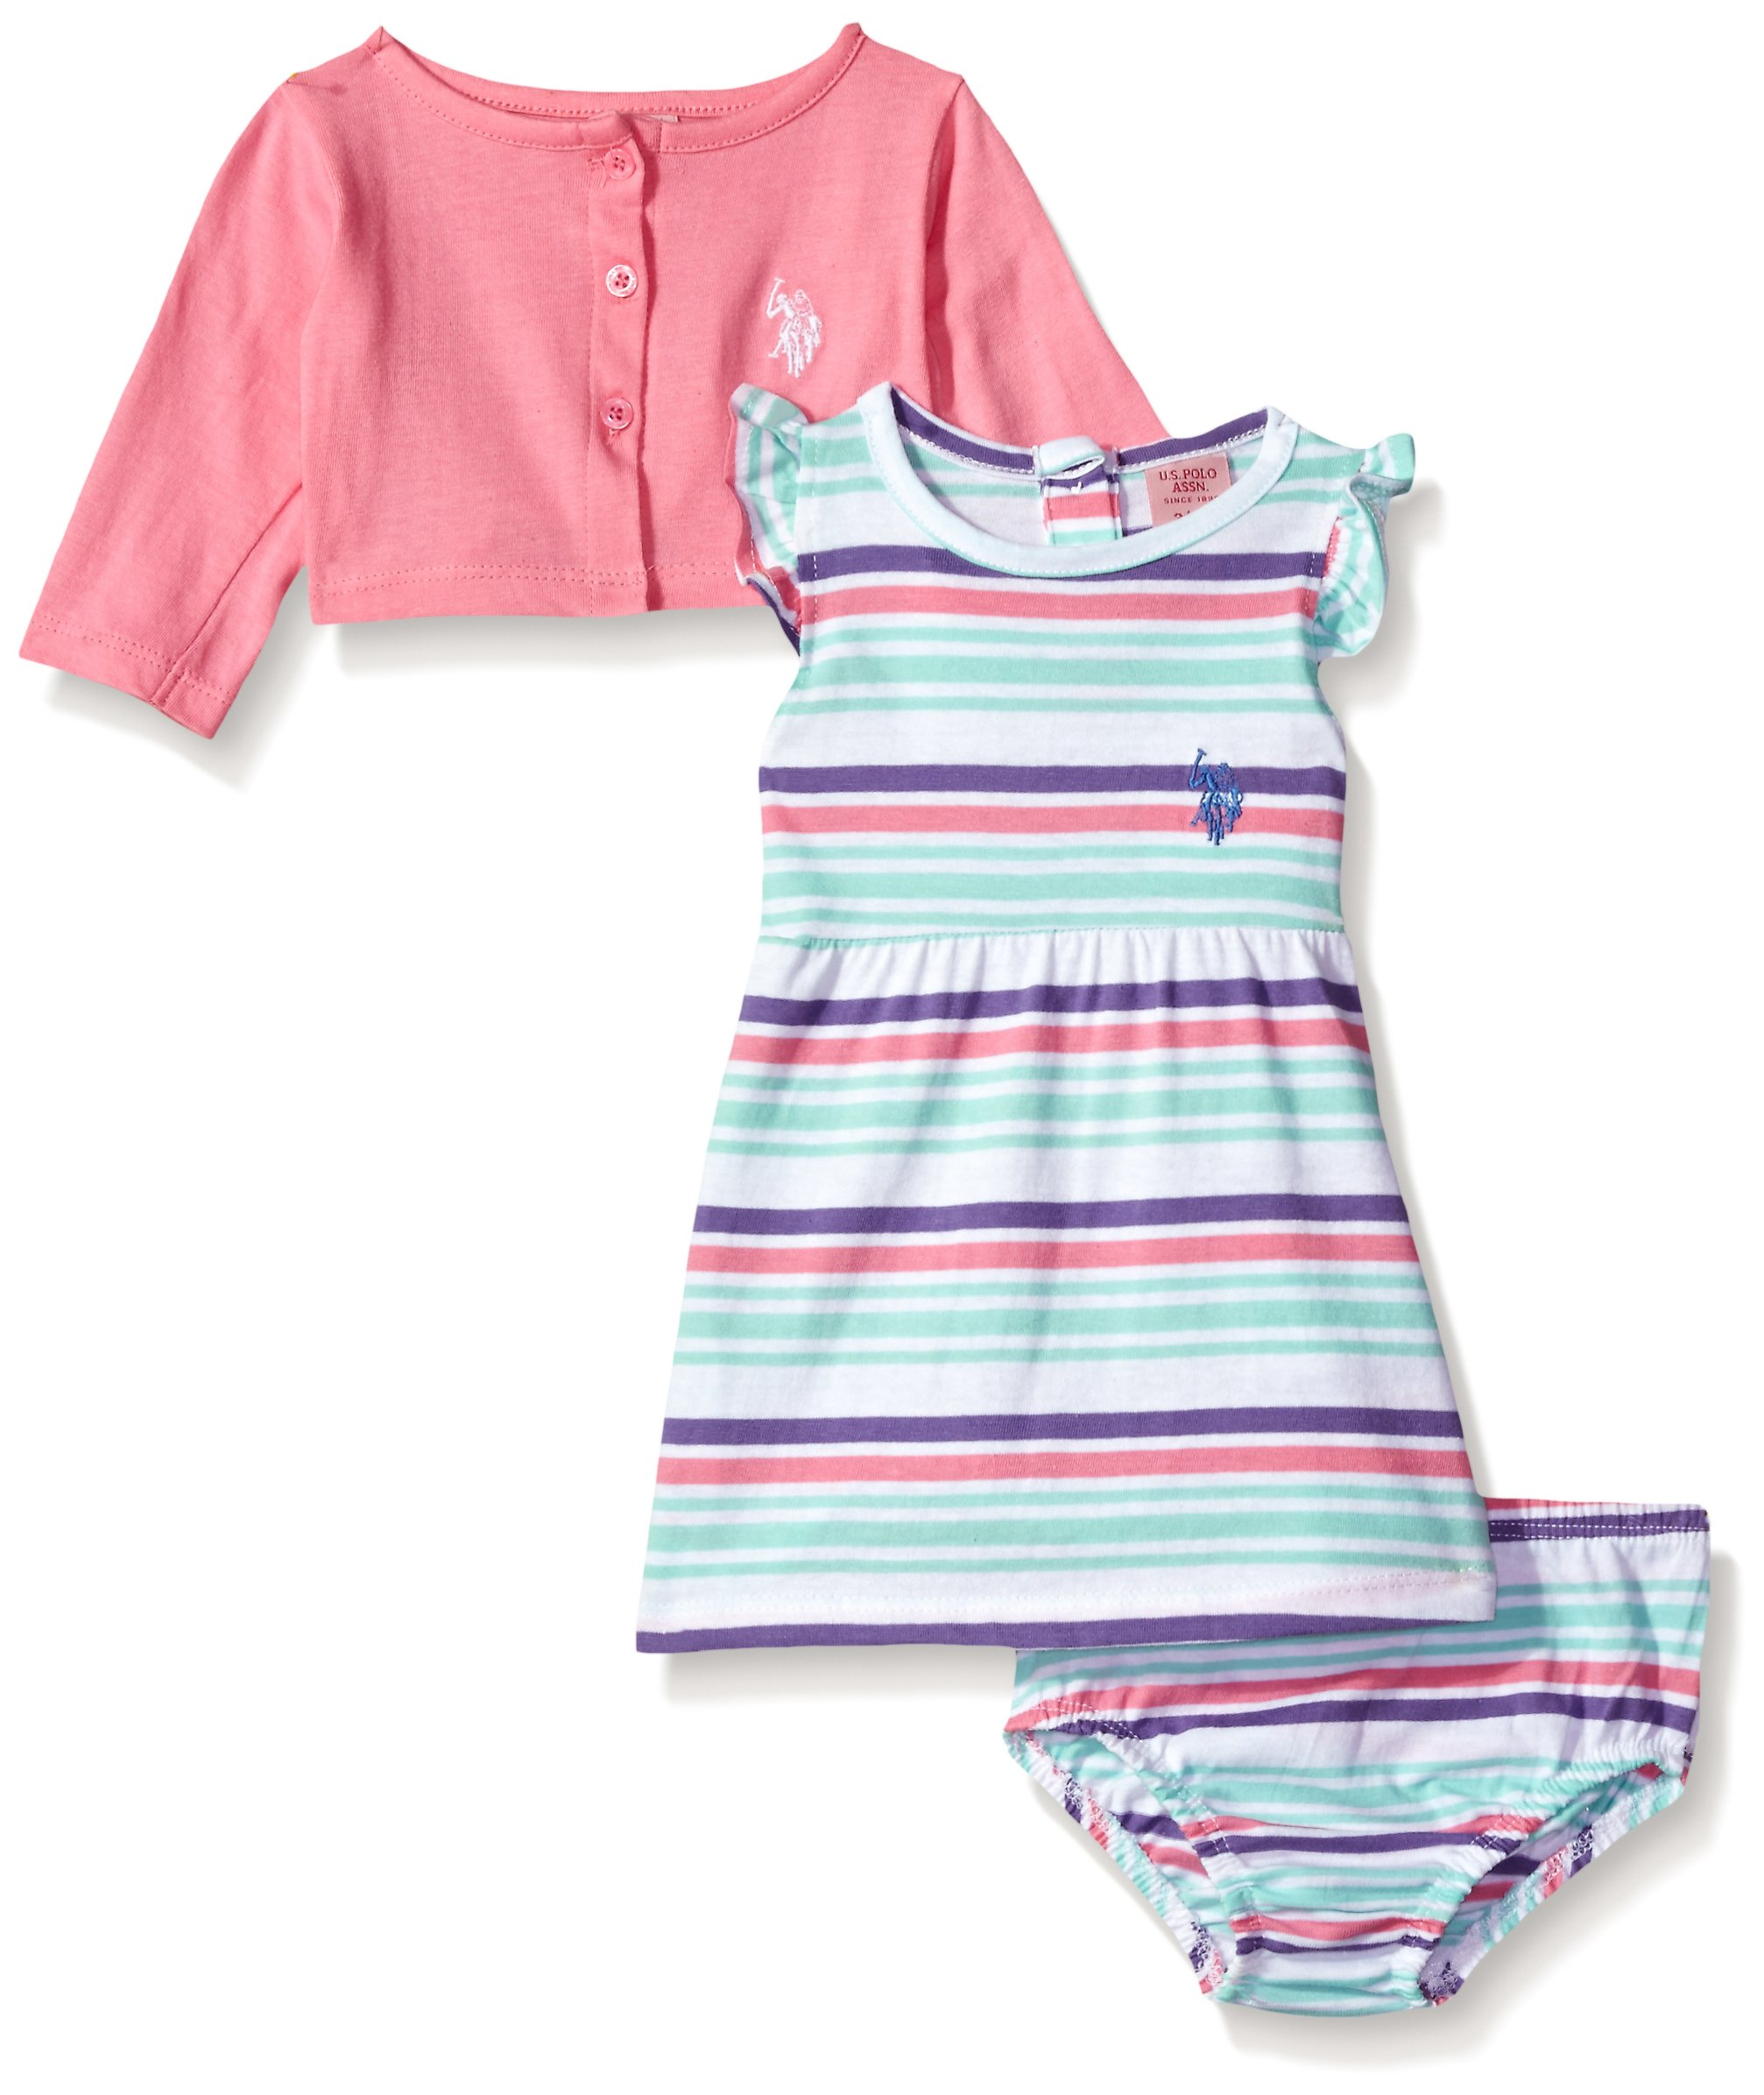 Awesome Design Of Polo Dress For Baby Girl Cutest Baby Clothing